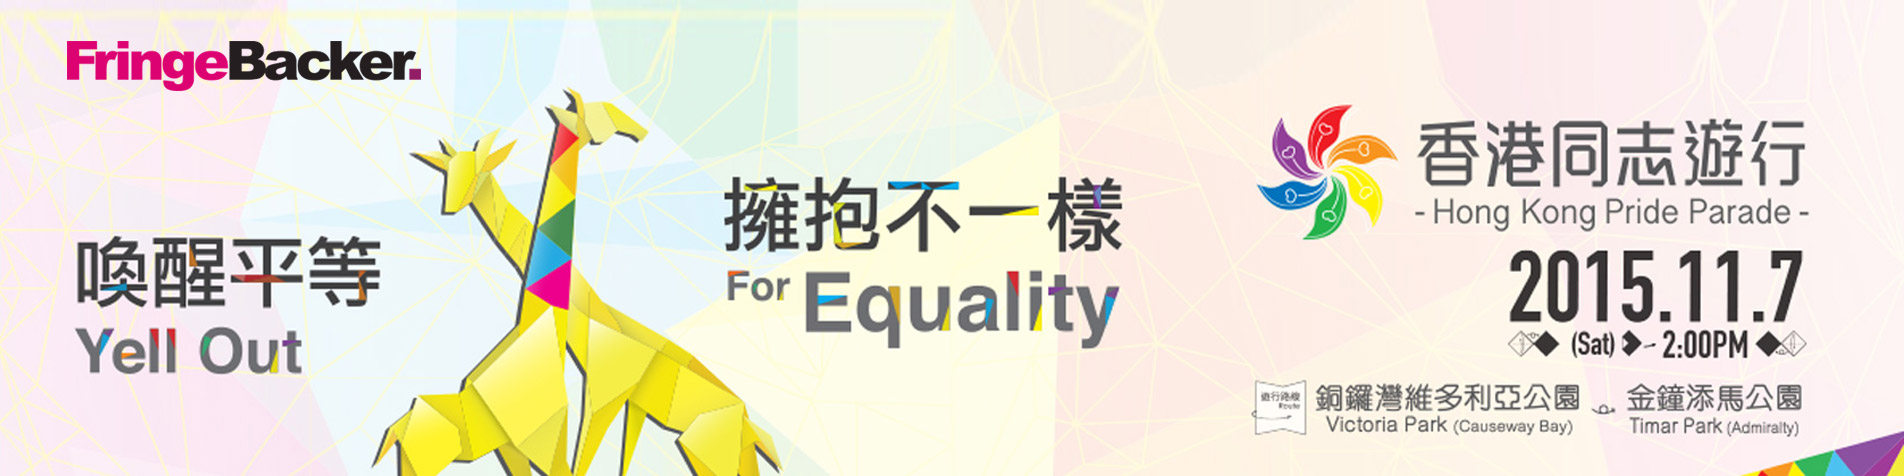 The Hong Kong Pride Parade -- A Courageous step towards Equality in Hong Kong